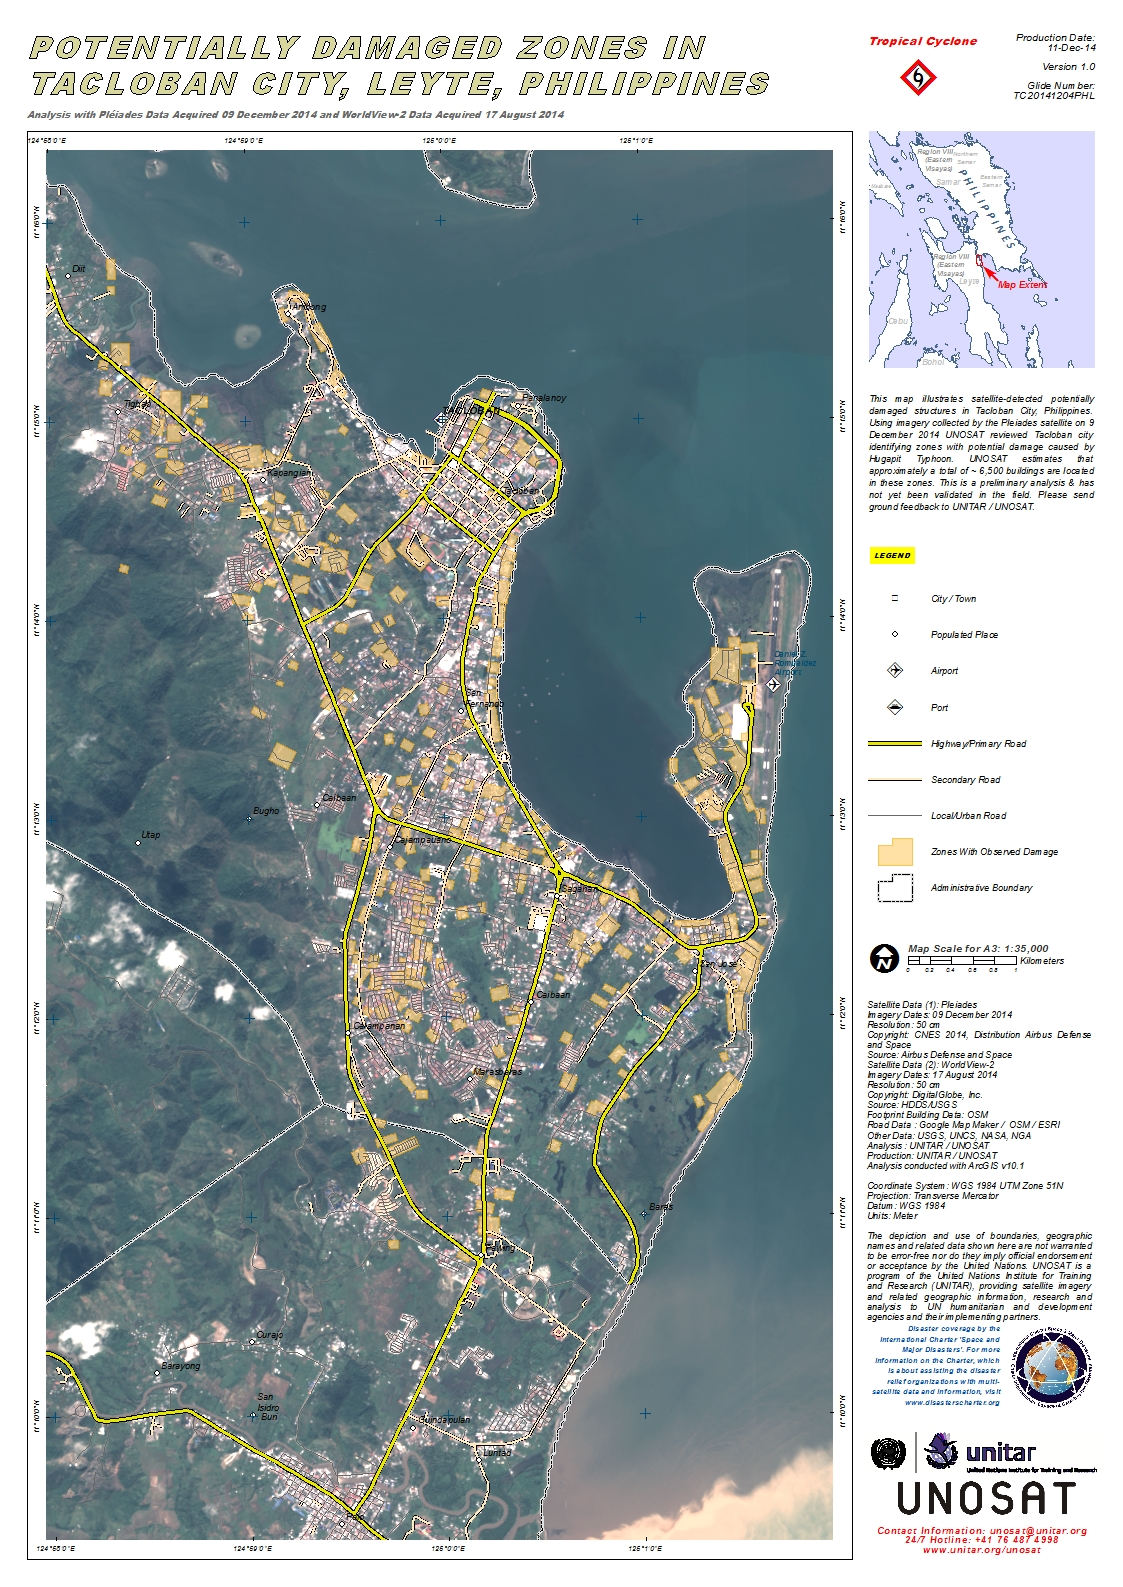 Tacloban Philippines Map.Potentially Damaged Zones In Tacloban City Leyte Philippines Unitar